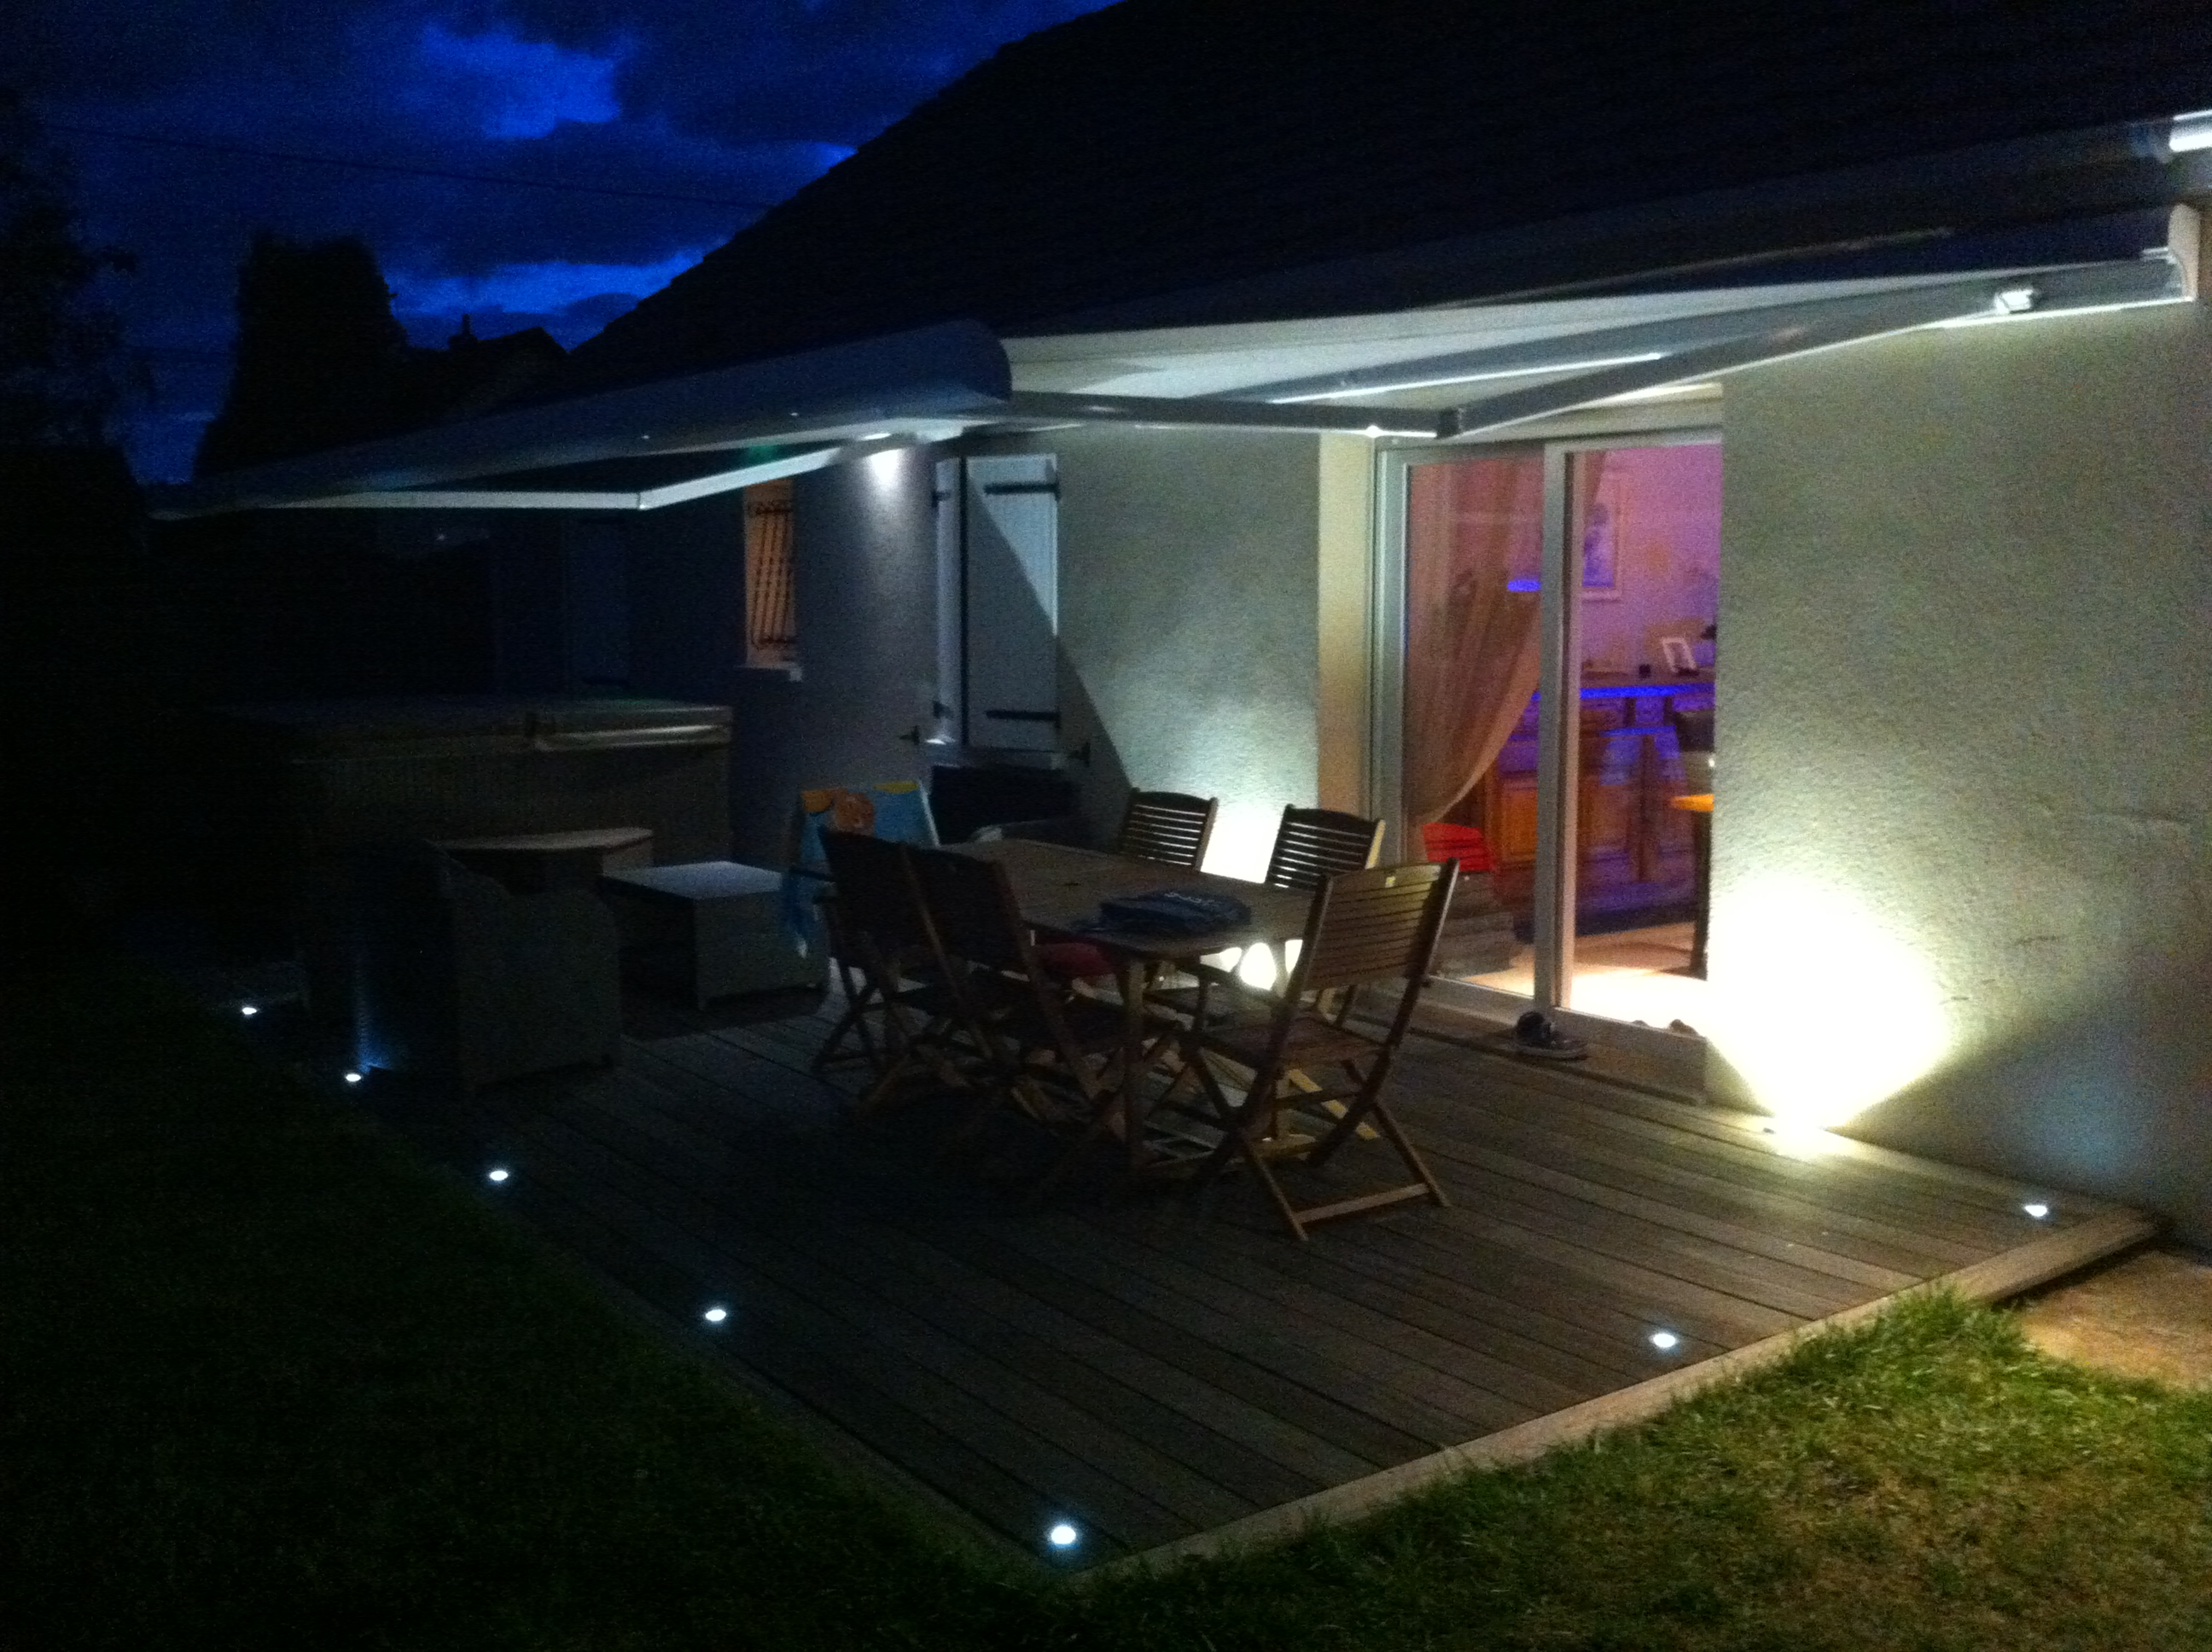 Clairage terrasse led eclairage ext rieur for Luminaire exterieur terrasse design